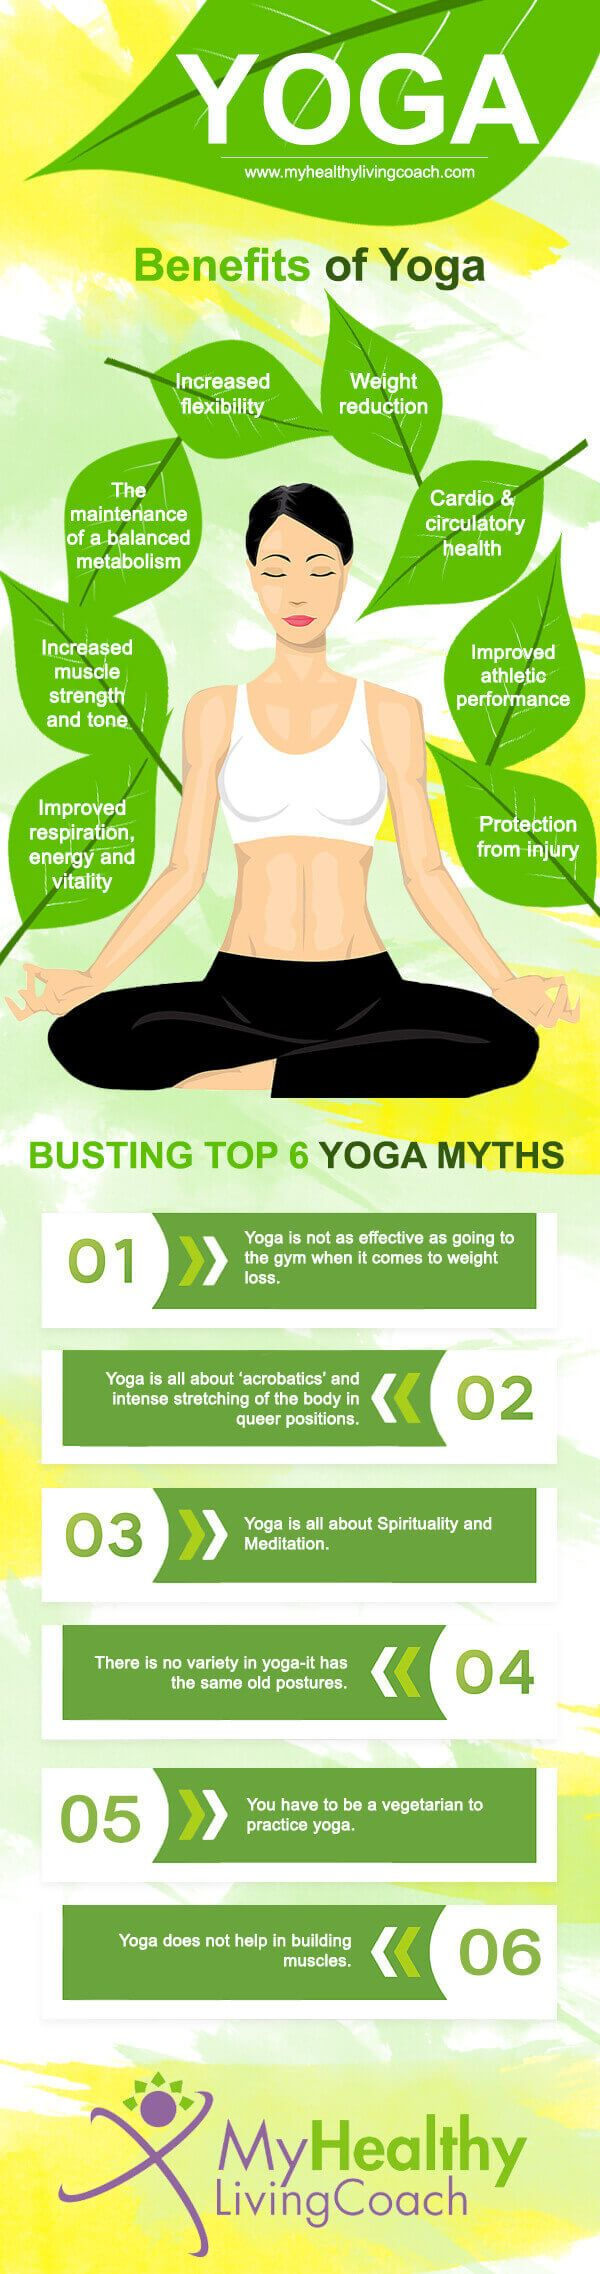 Benefits of yoga and top 6 myths you should know! - http://blog.nadyoga.org/benefits-of-yoga-and-top-6-myths/